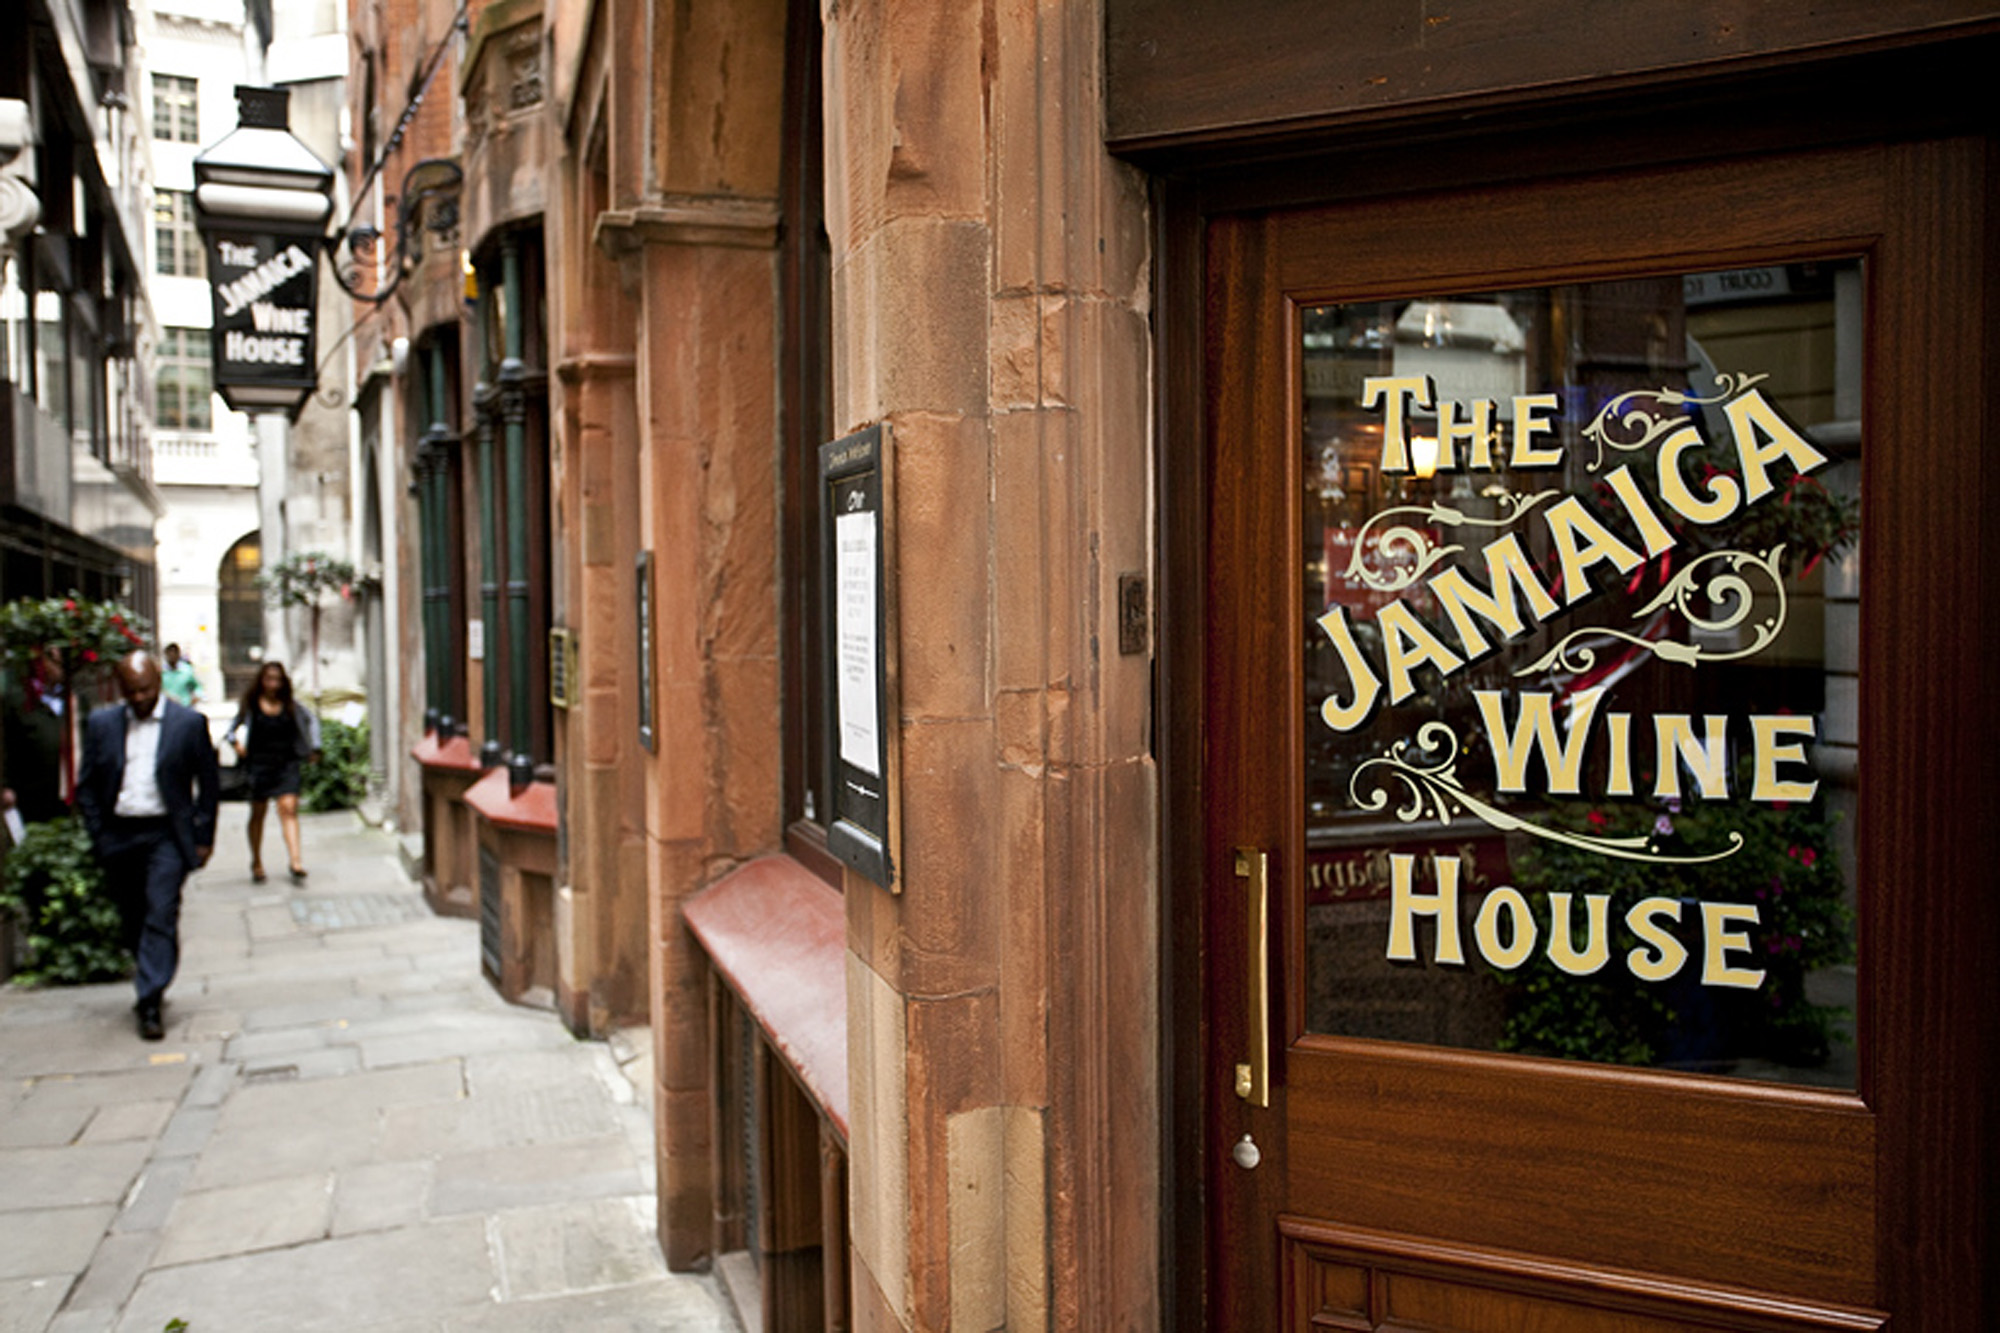 Jamaica Wine House - Cornhill, London